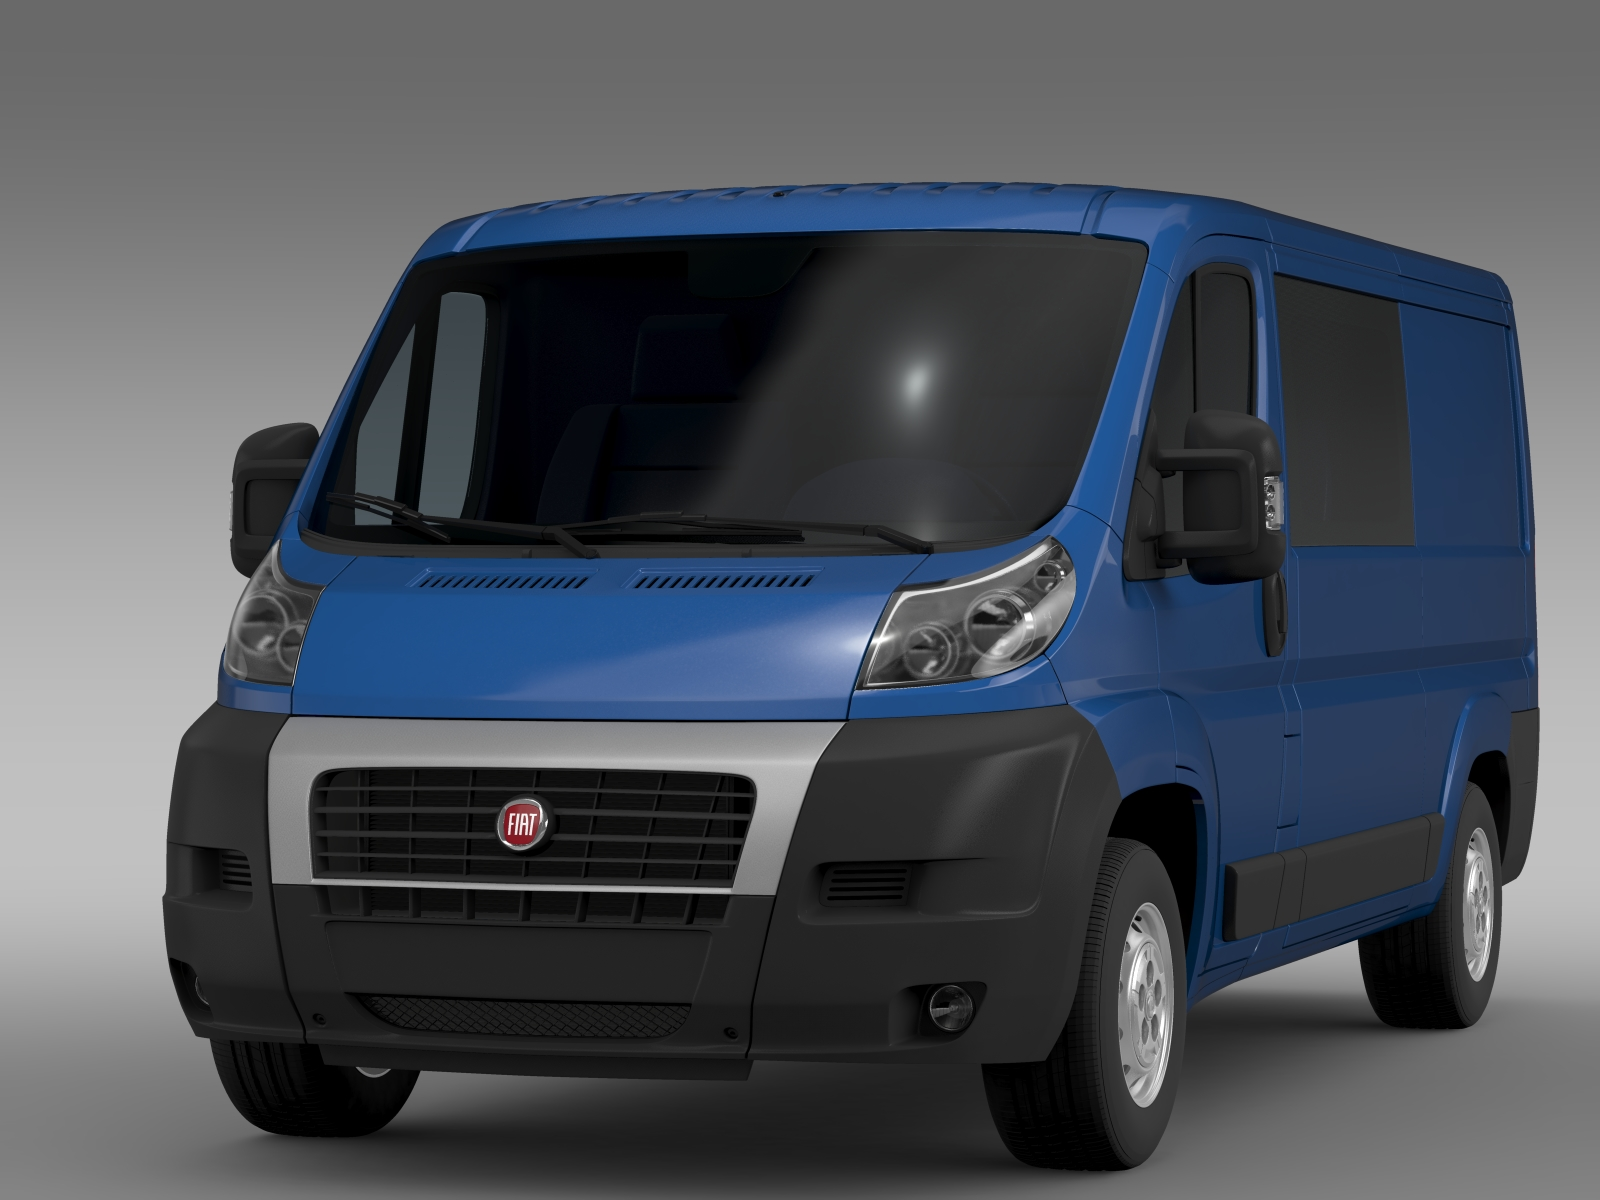 fiat ducato combi l2h1 2006 2014 3d model buy fiat ducato combi l2h1 2006 2014 3d model. Black Bedroom Furniture Sets. Home Design Ideas